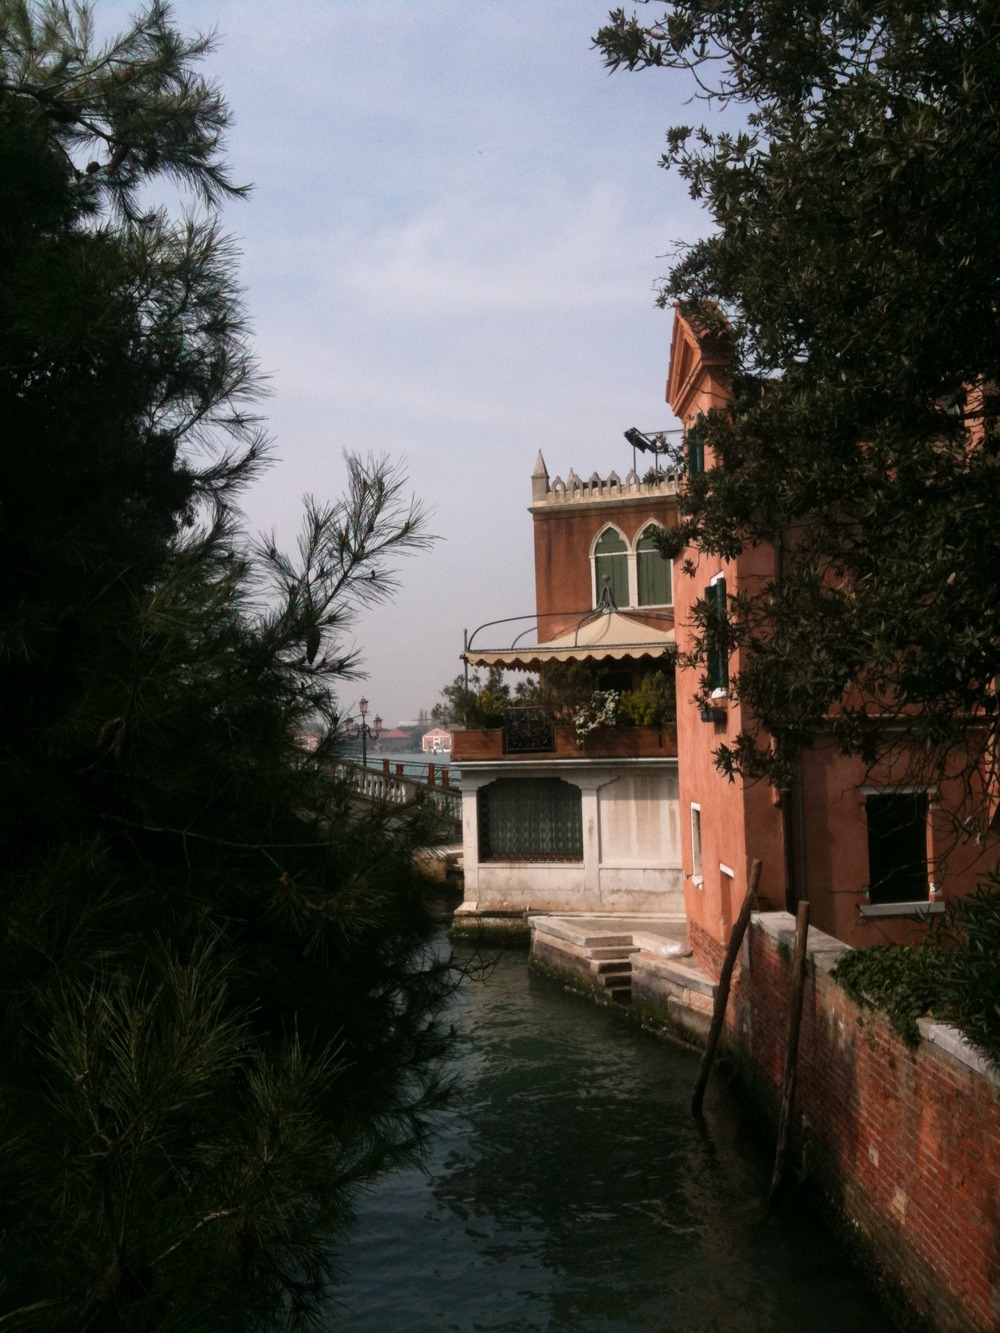 Venice - Mobile Photos - Day 6